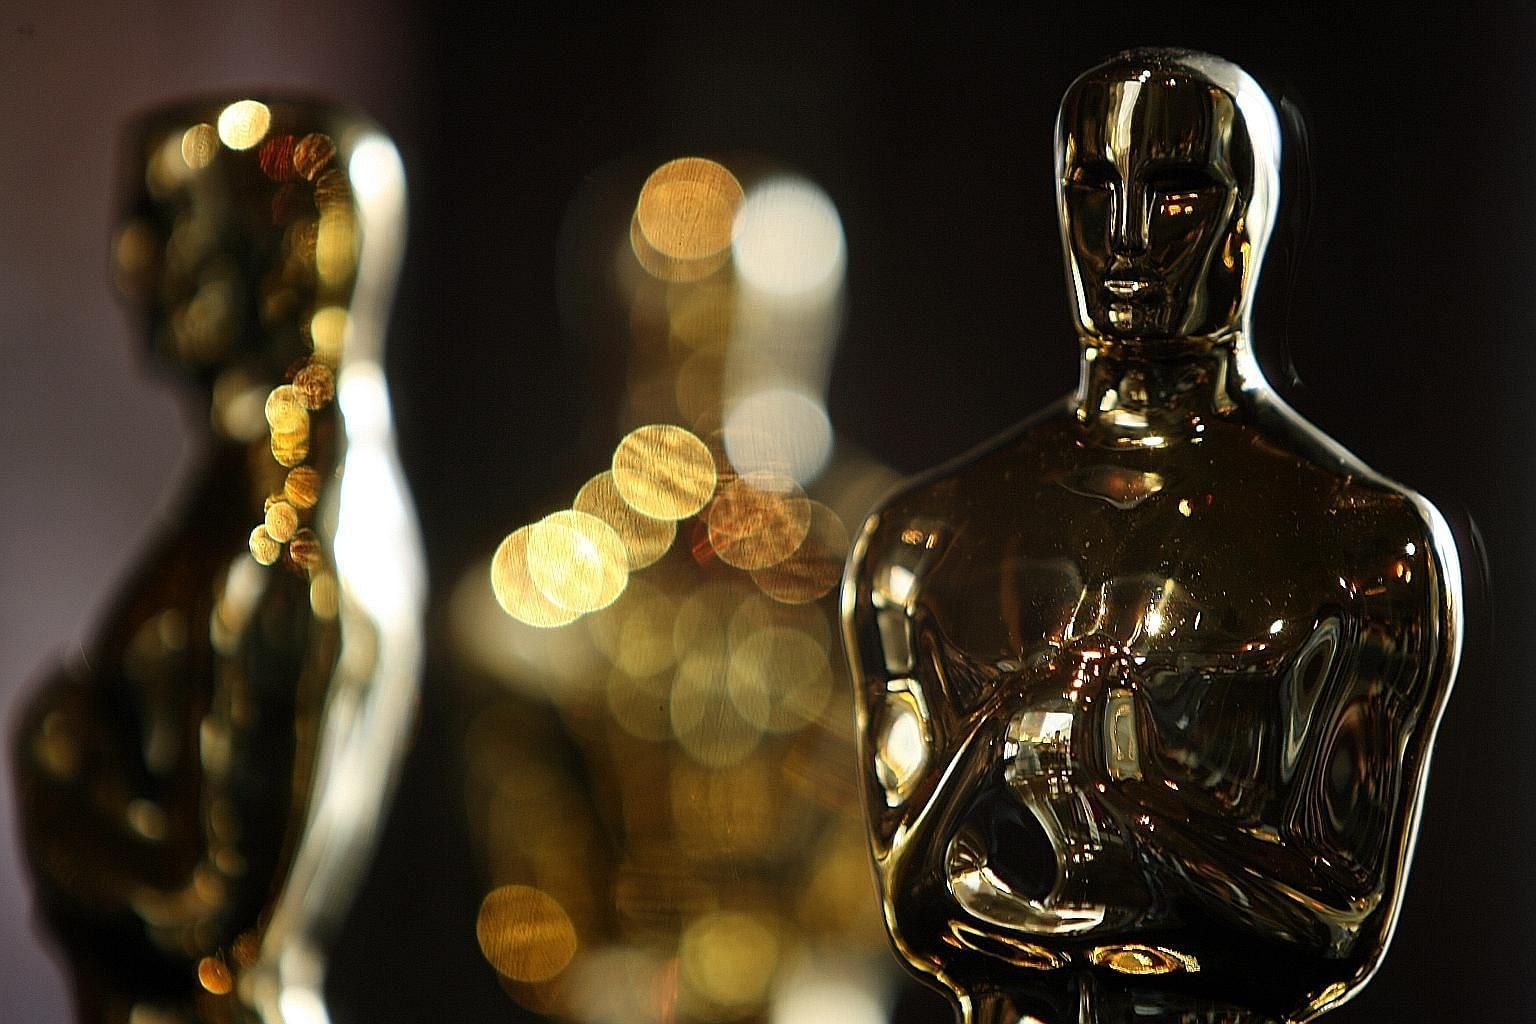 The Oscars are voted by members of the Academy of Motion Picture Arts and Sciences, which was established in 1929 as the pre-eminent film institution with the stated goal to advance the arts and sciences of motion pictures.